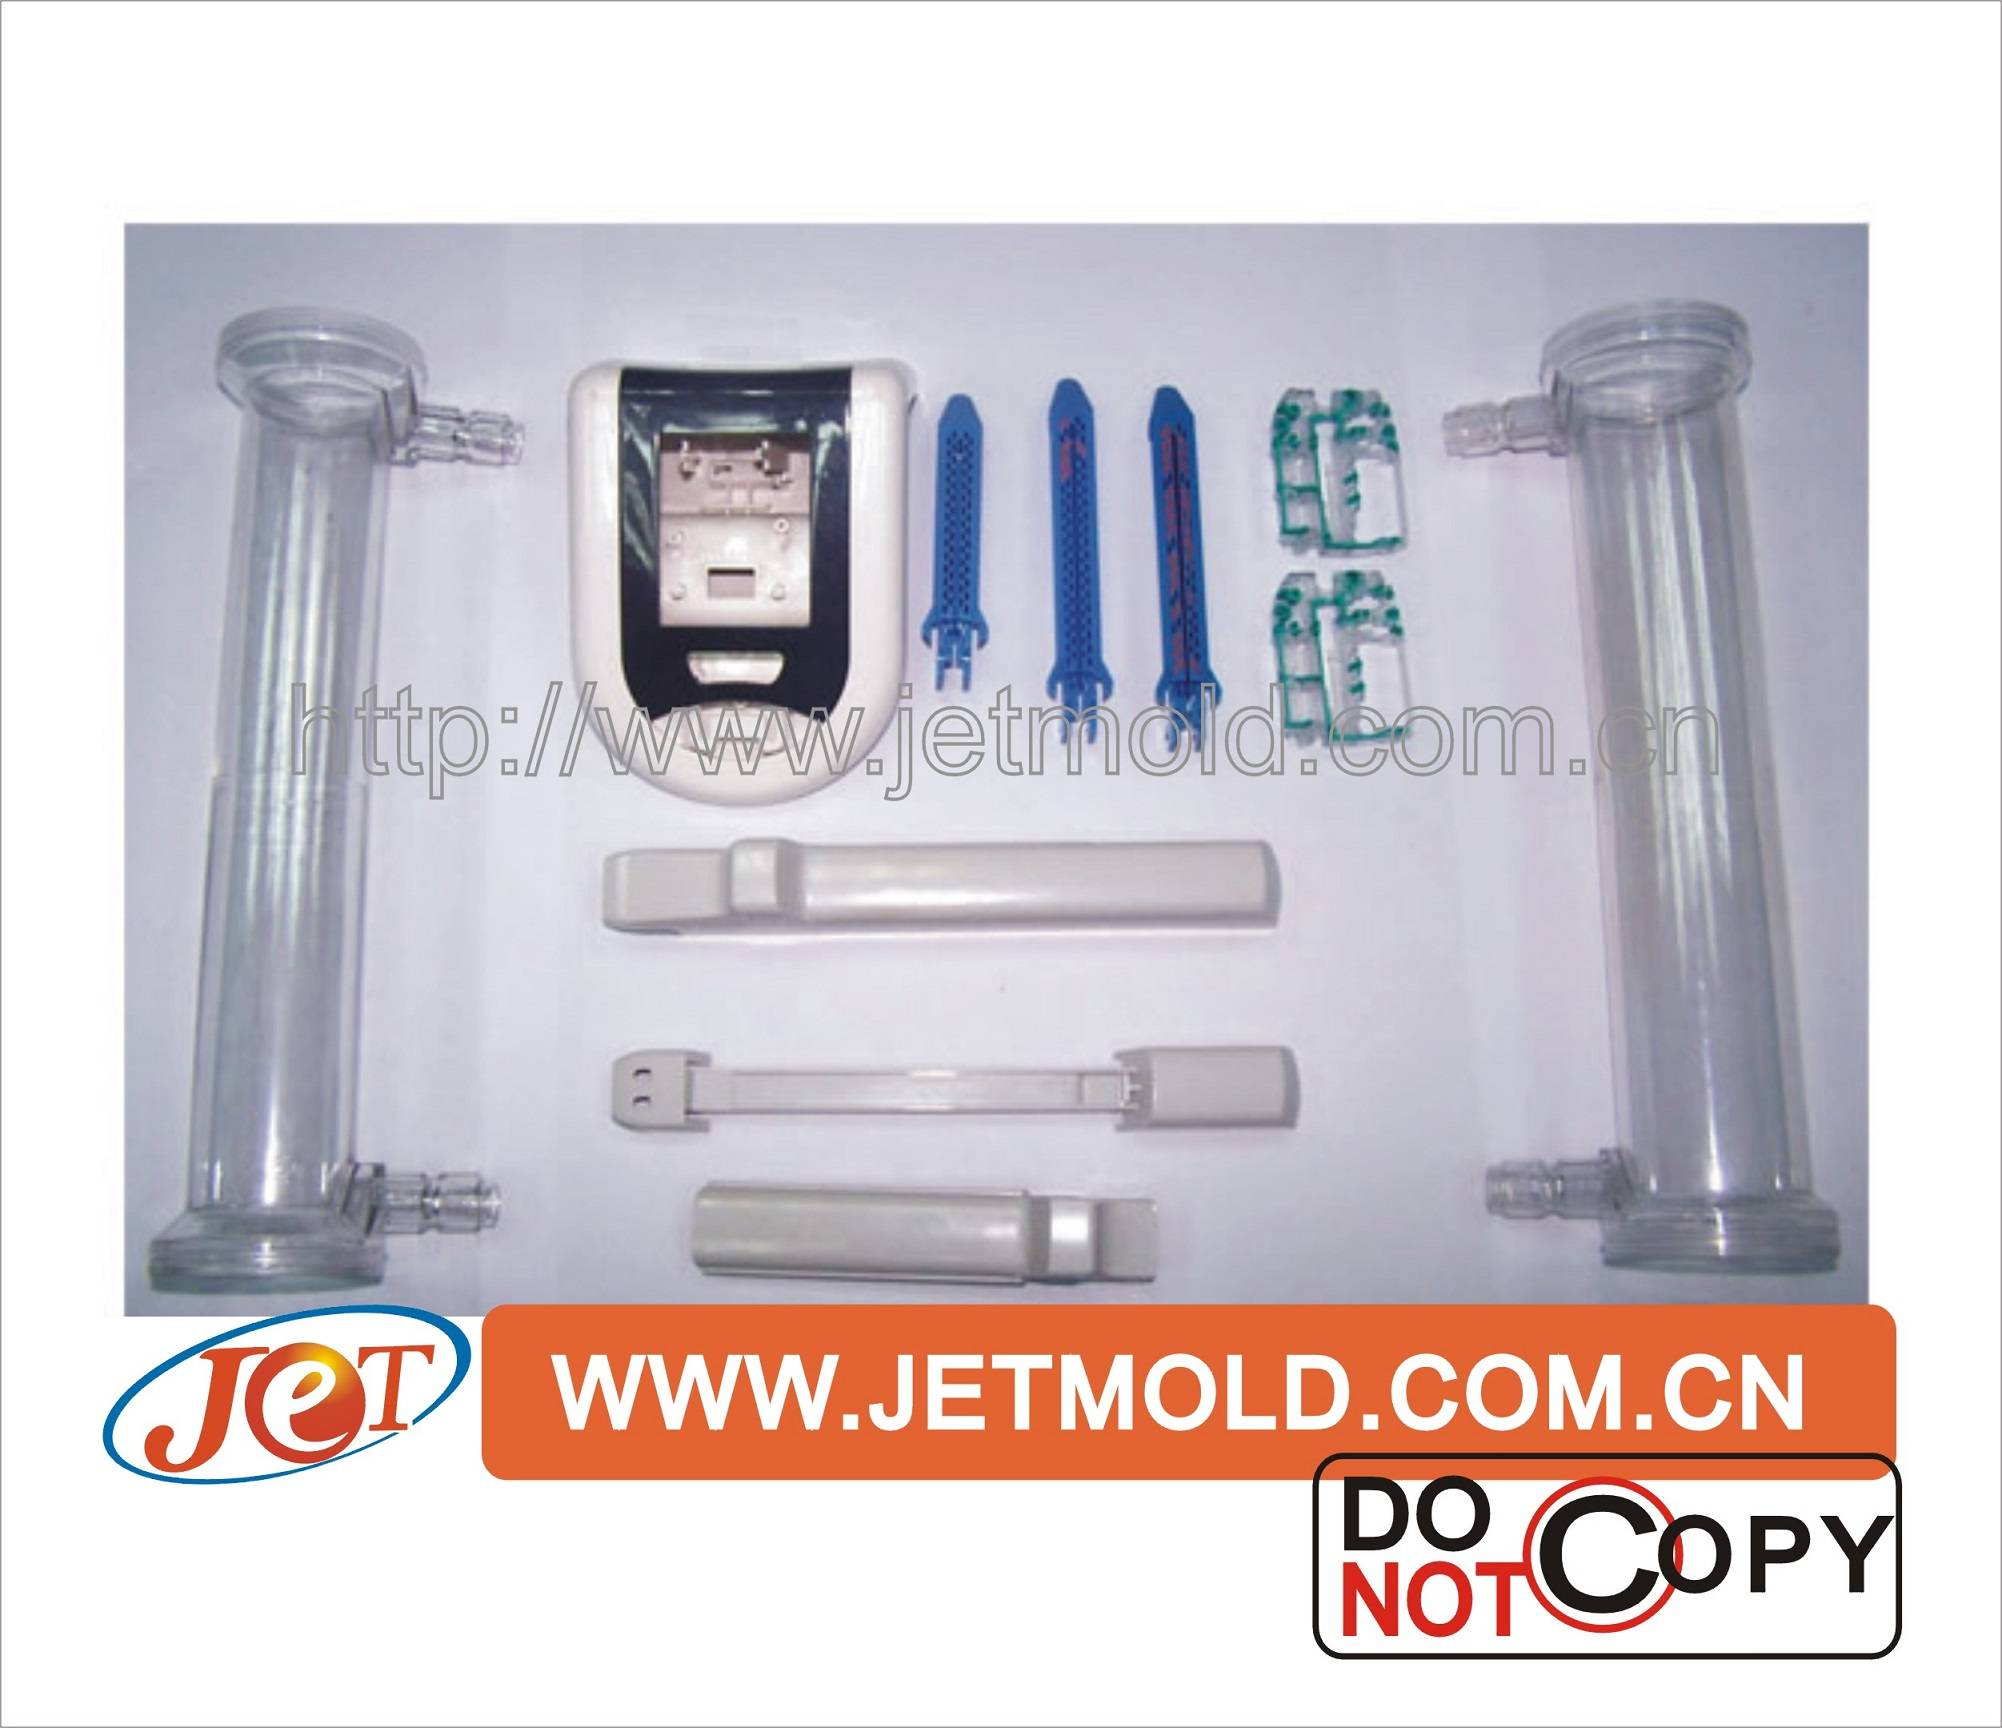 Plastic Medical Products for plastic injection mold